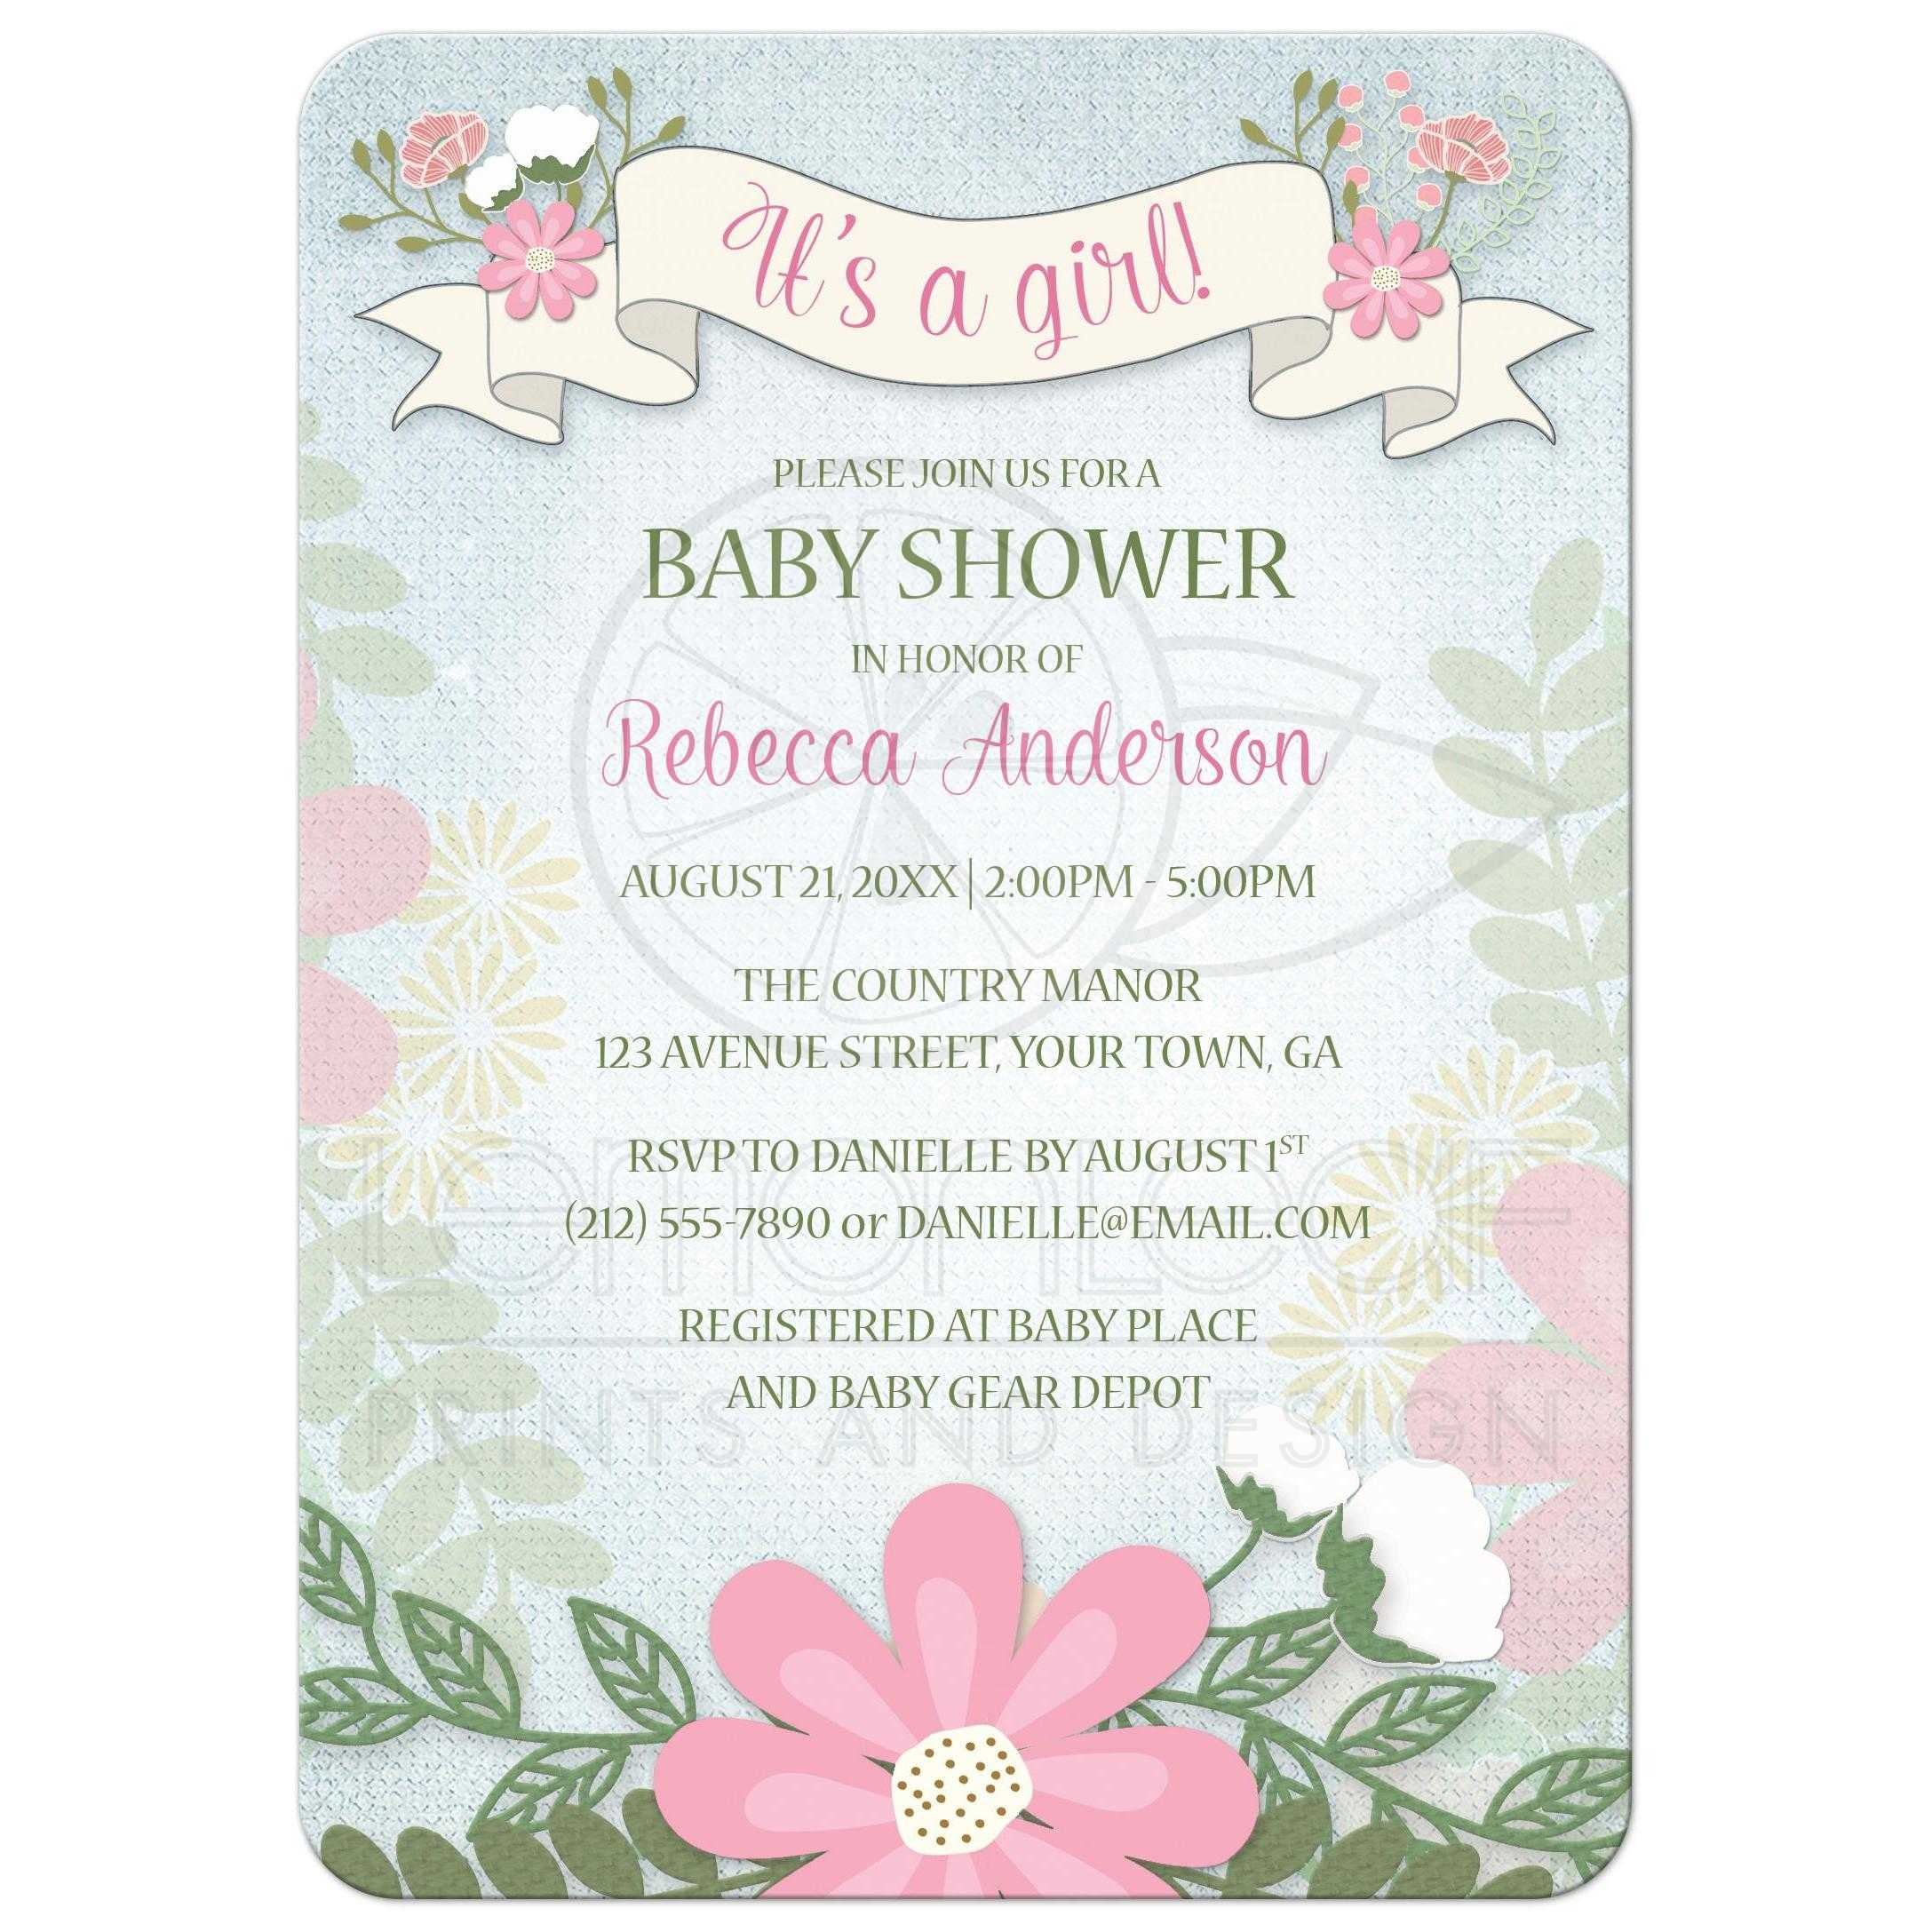 Baby Shower Invitations - Rustic Girl Floral Banner